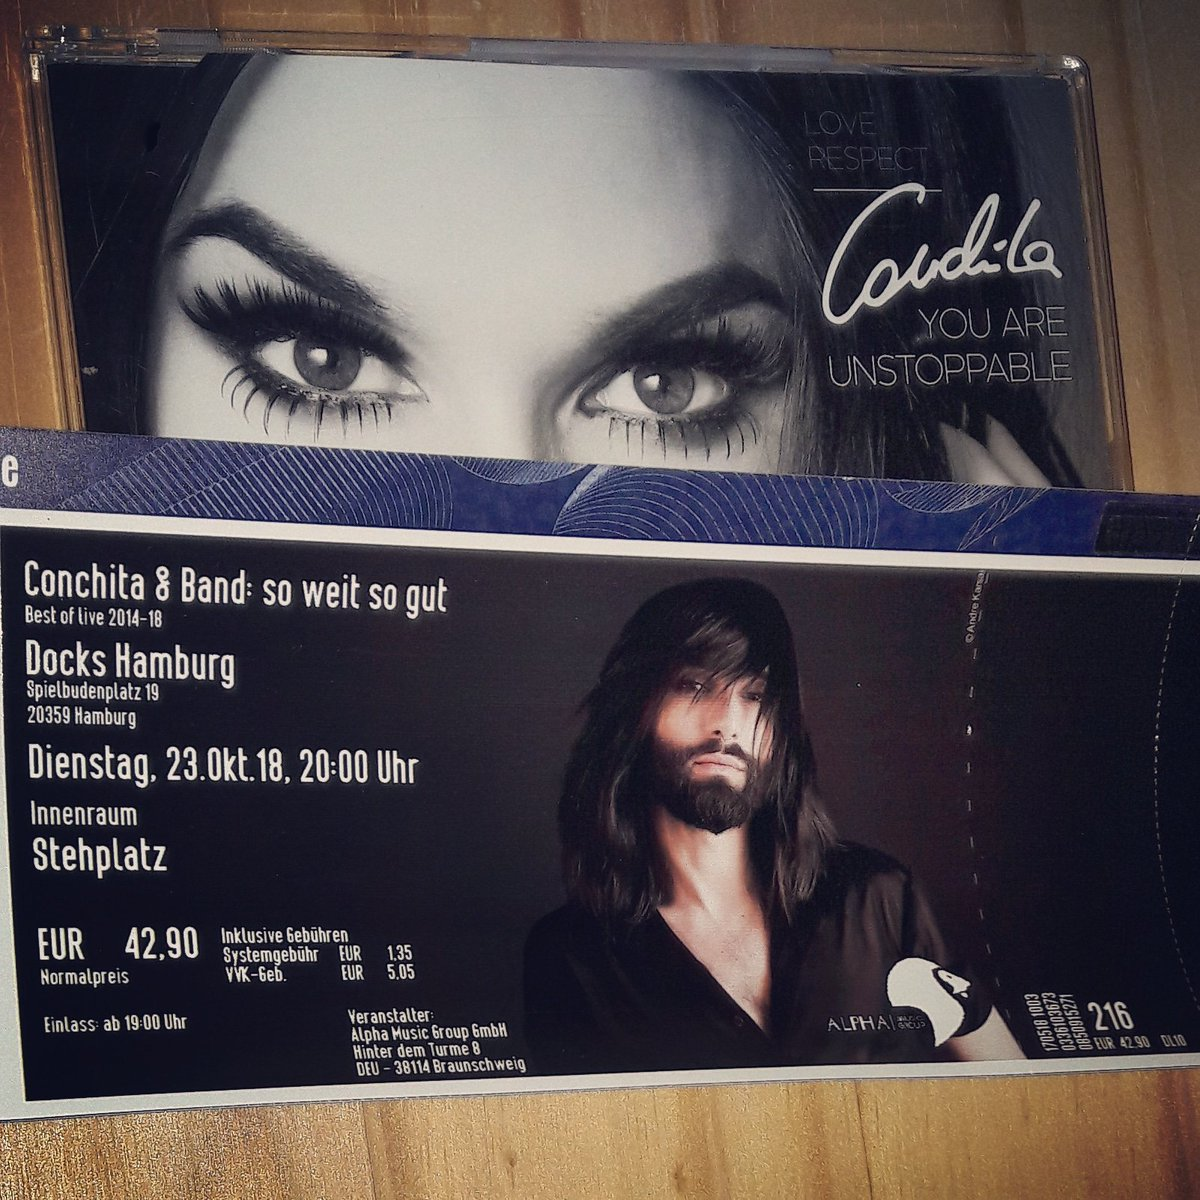 #Conchita &quot;Soweit so Gut&quot; Tour 2018 Germany and Austria  Get Your Tickets now  http:// reservix.de  &nbsp;   and  http:// oeticket.at  &nbsp;    #ConchitaSWSG #NewTour #ConchitaWurst #TomNeuwirth  http:// conchitawurst.com  &nbsp;    Count Every Second #Unstoppable #theunstoppables #LiveMusic<br>http://pic.twitter.com/xBuaygbwF7